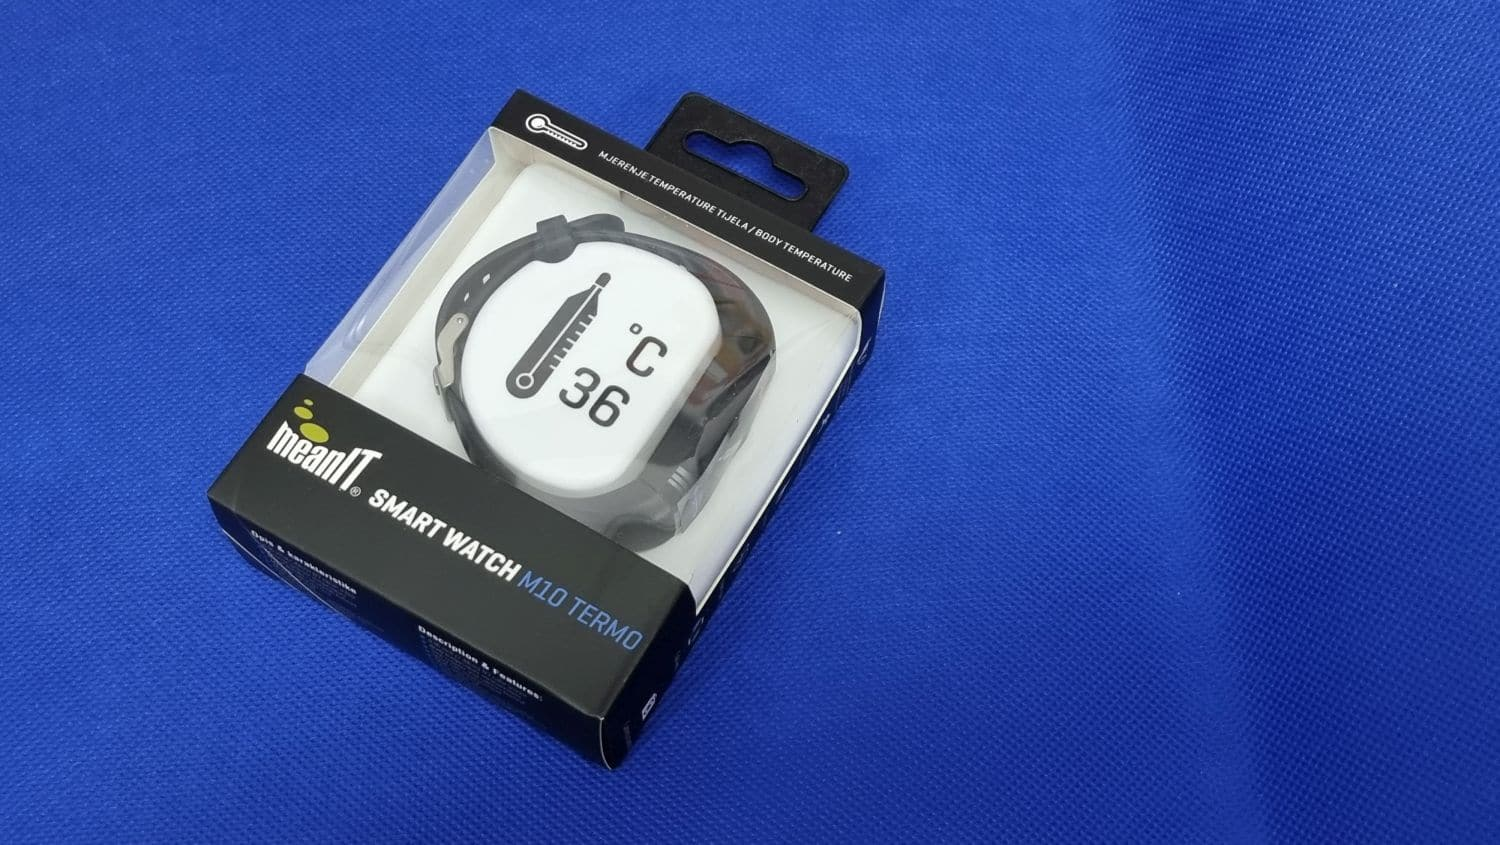 meanIT Smartwatch M10 Termo 2